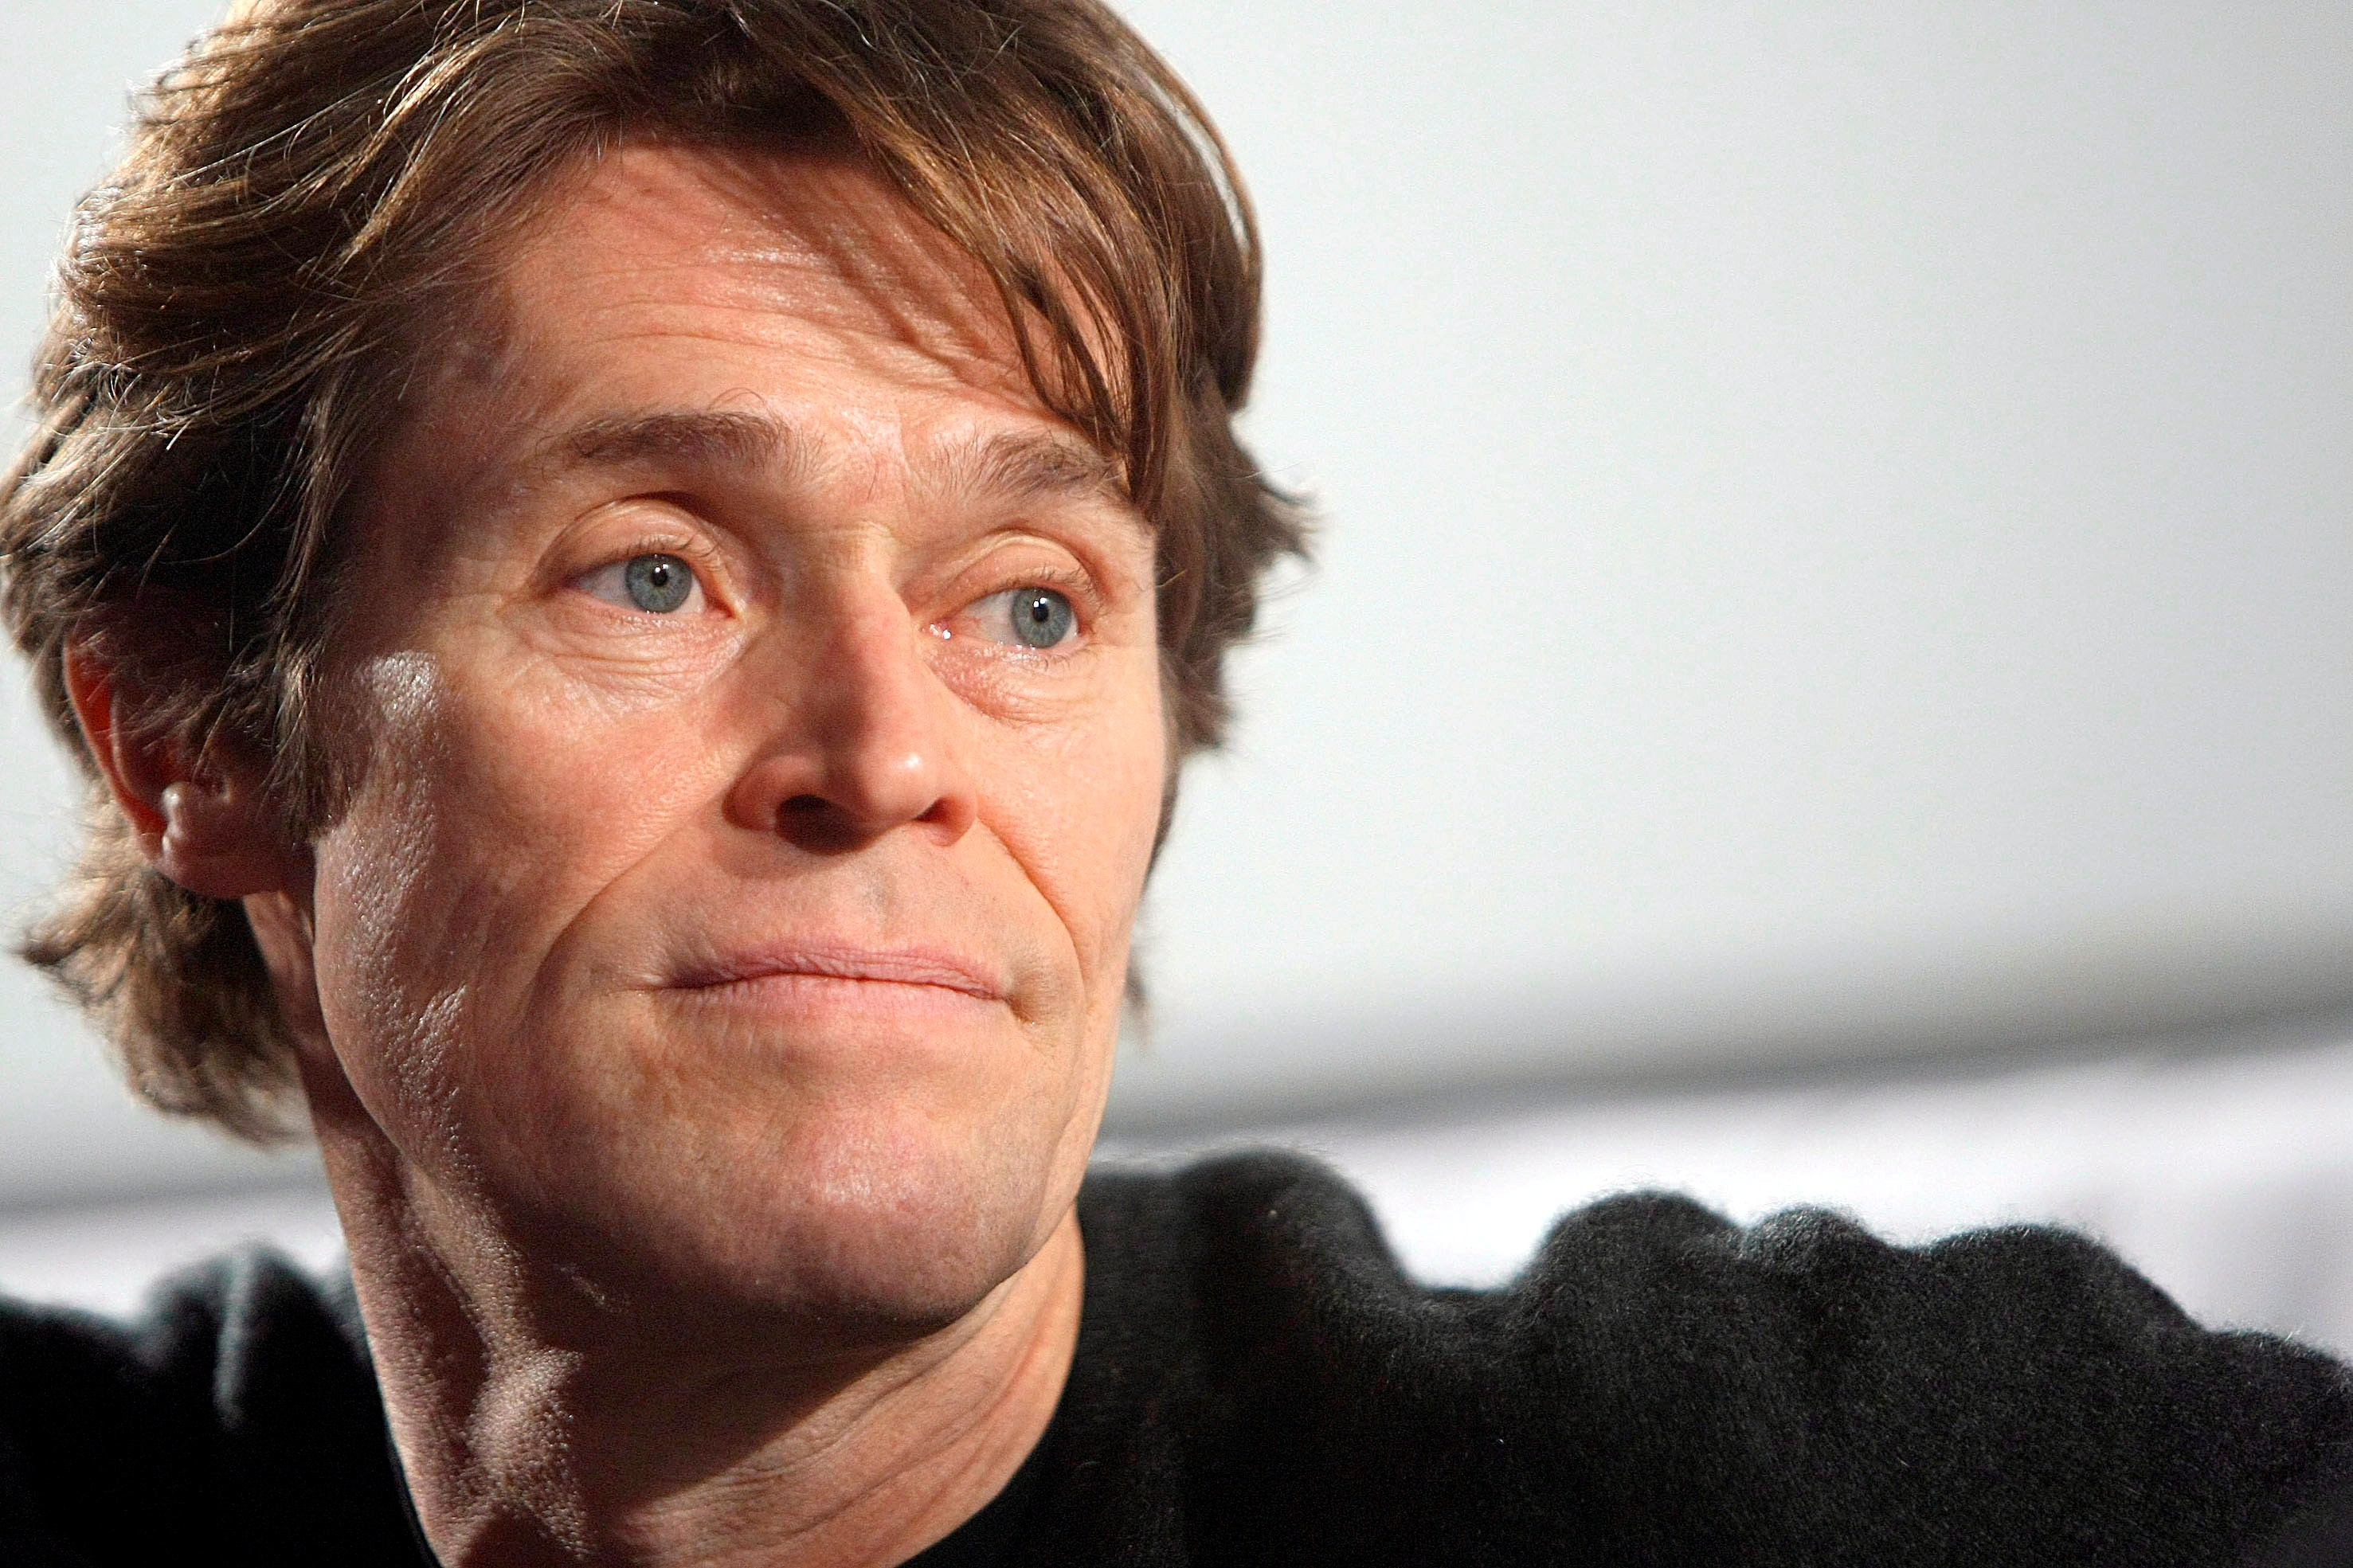 Willem Dafoe Face HD Wallpapers 56331 2954x1969px